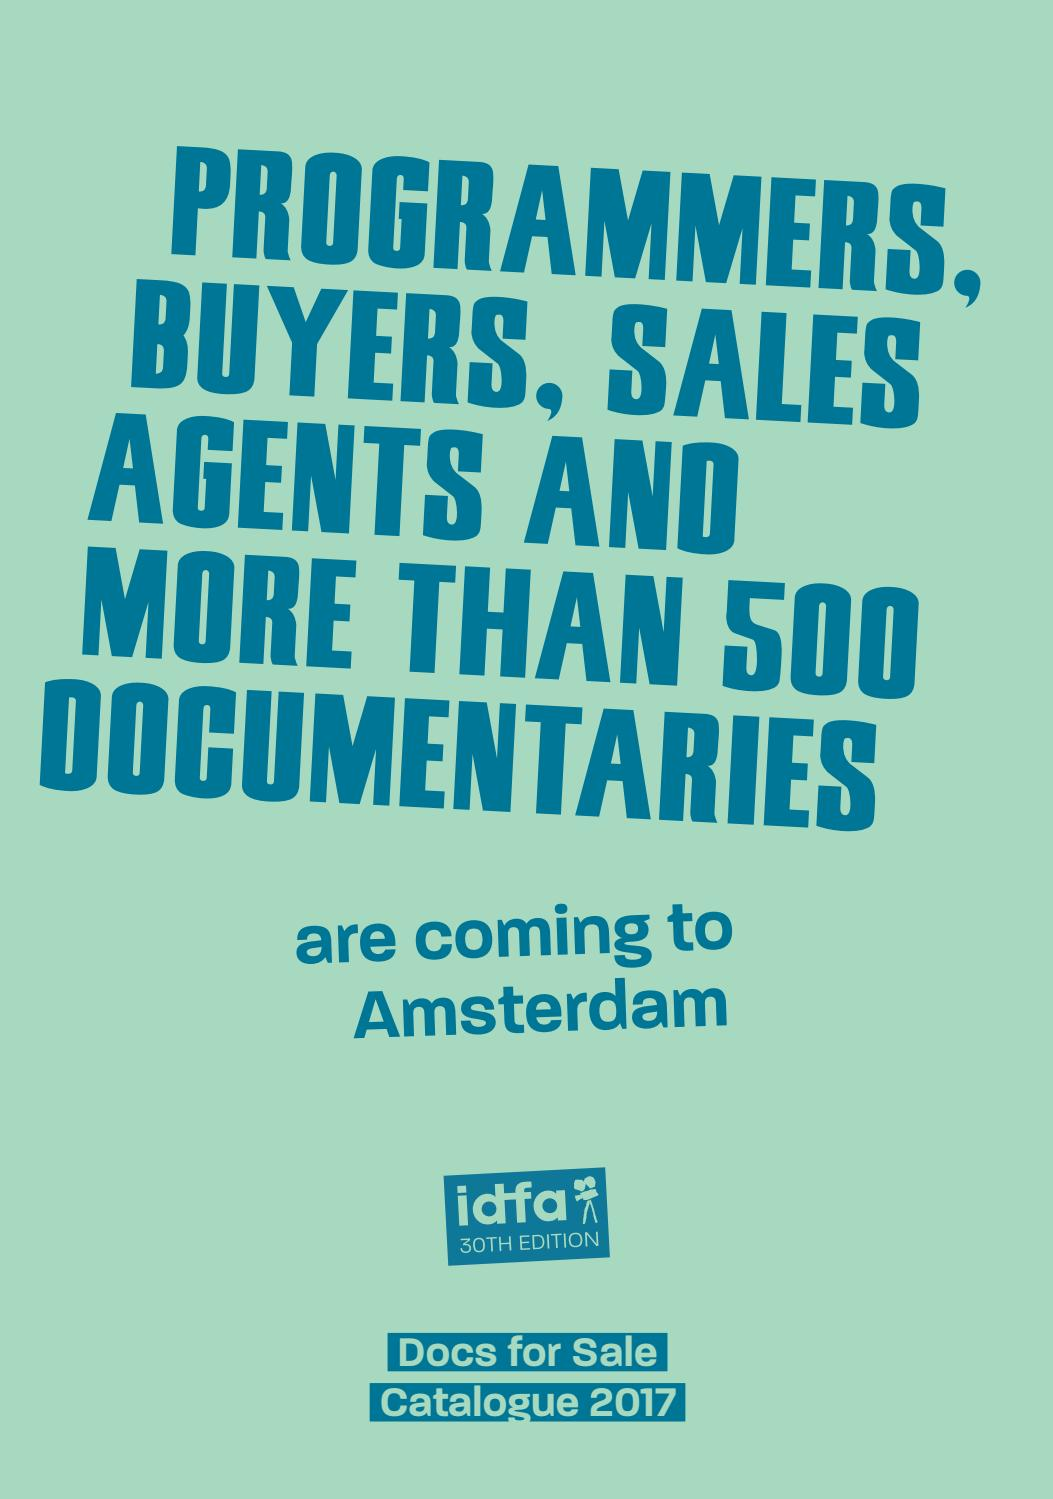 Docs for sale 2017 catalogue by idfa international documentary film festival amsterdam issuu